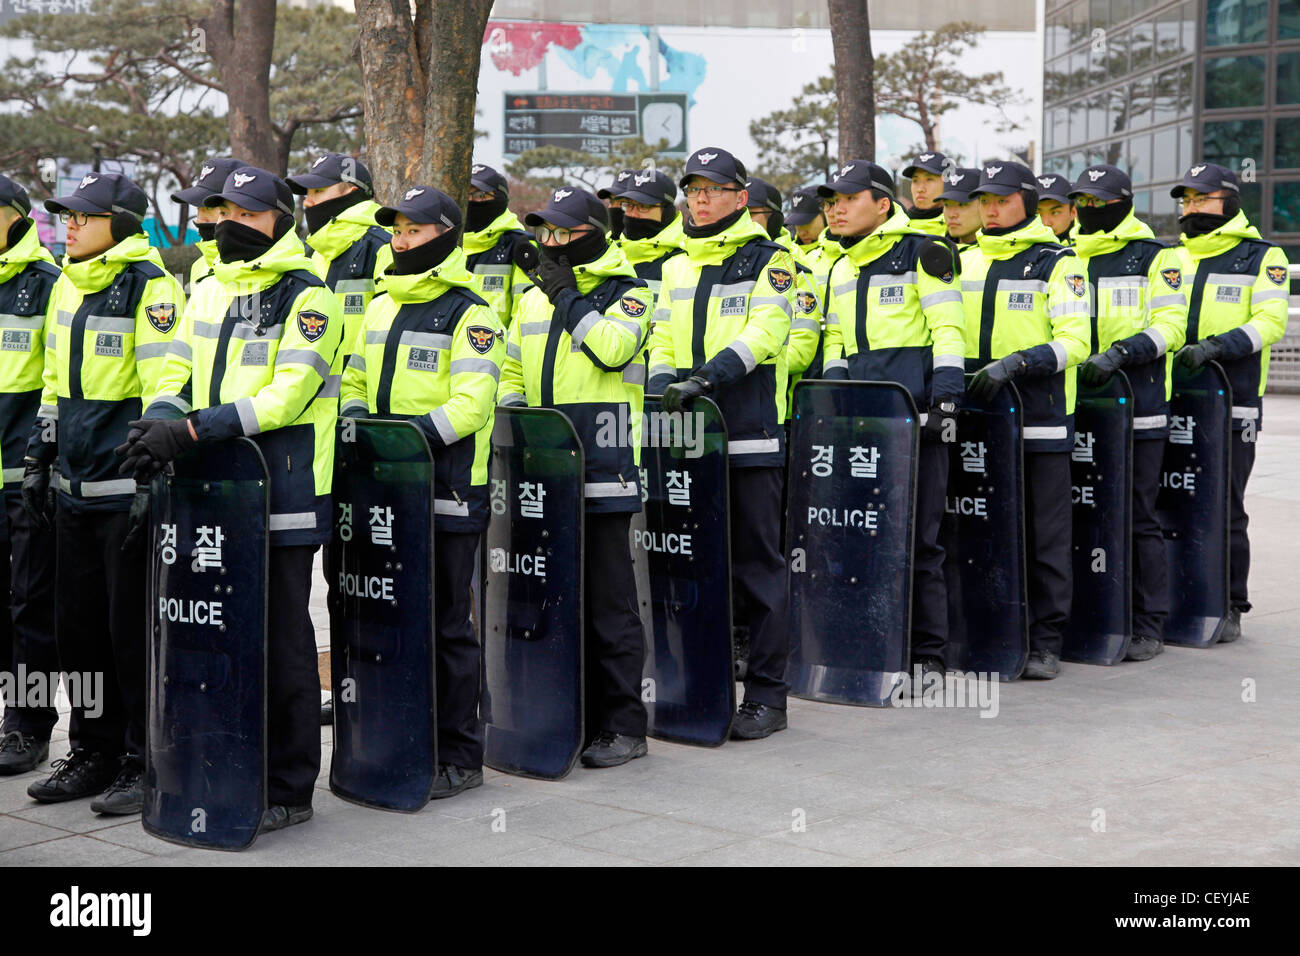 Korean riot police with riot equipment and shields in Seoul, South Korea - Stock Image